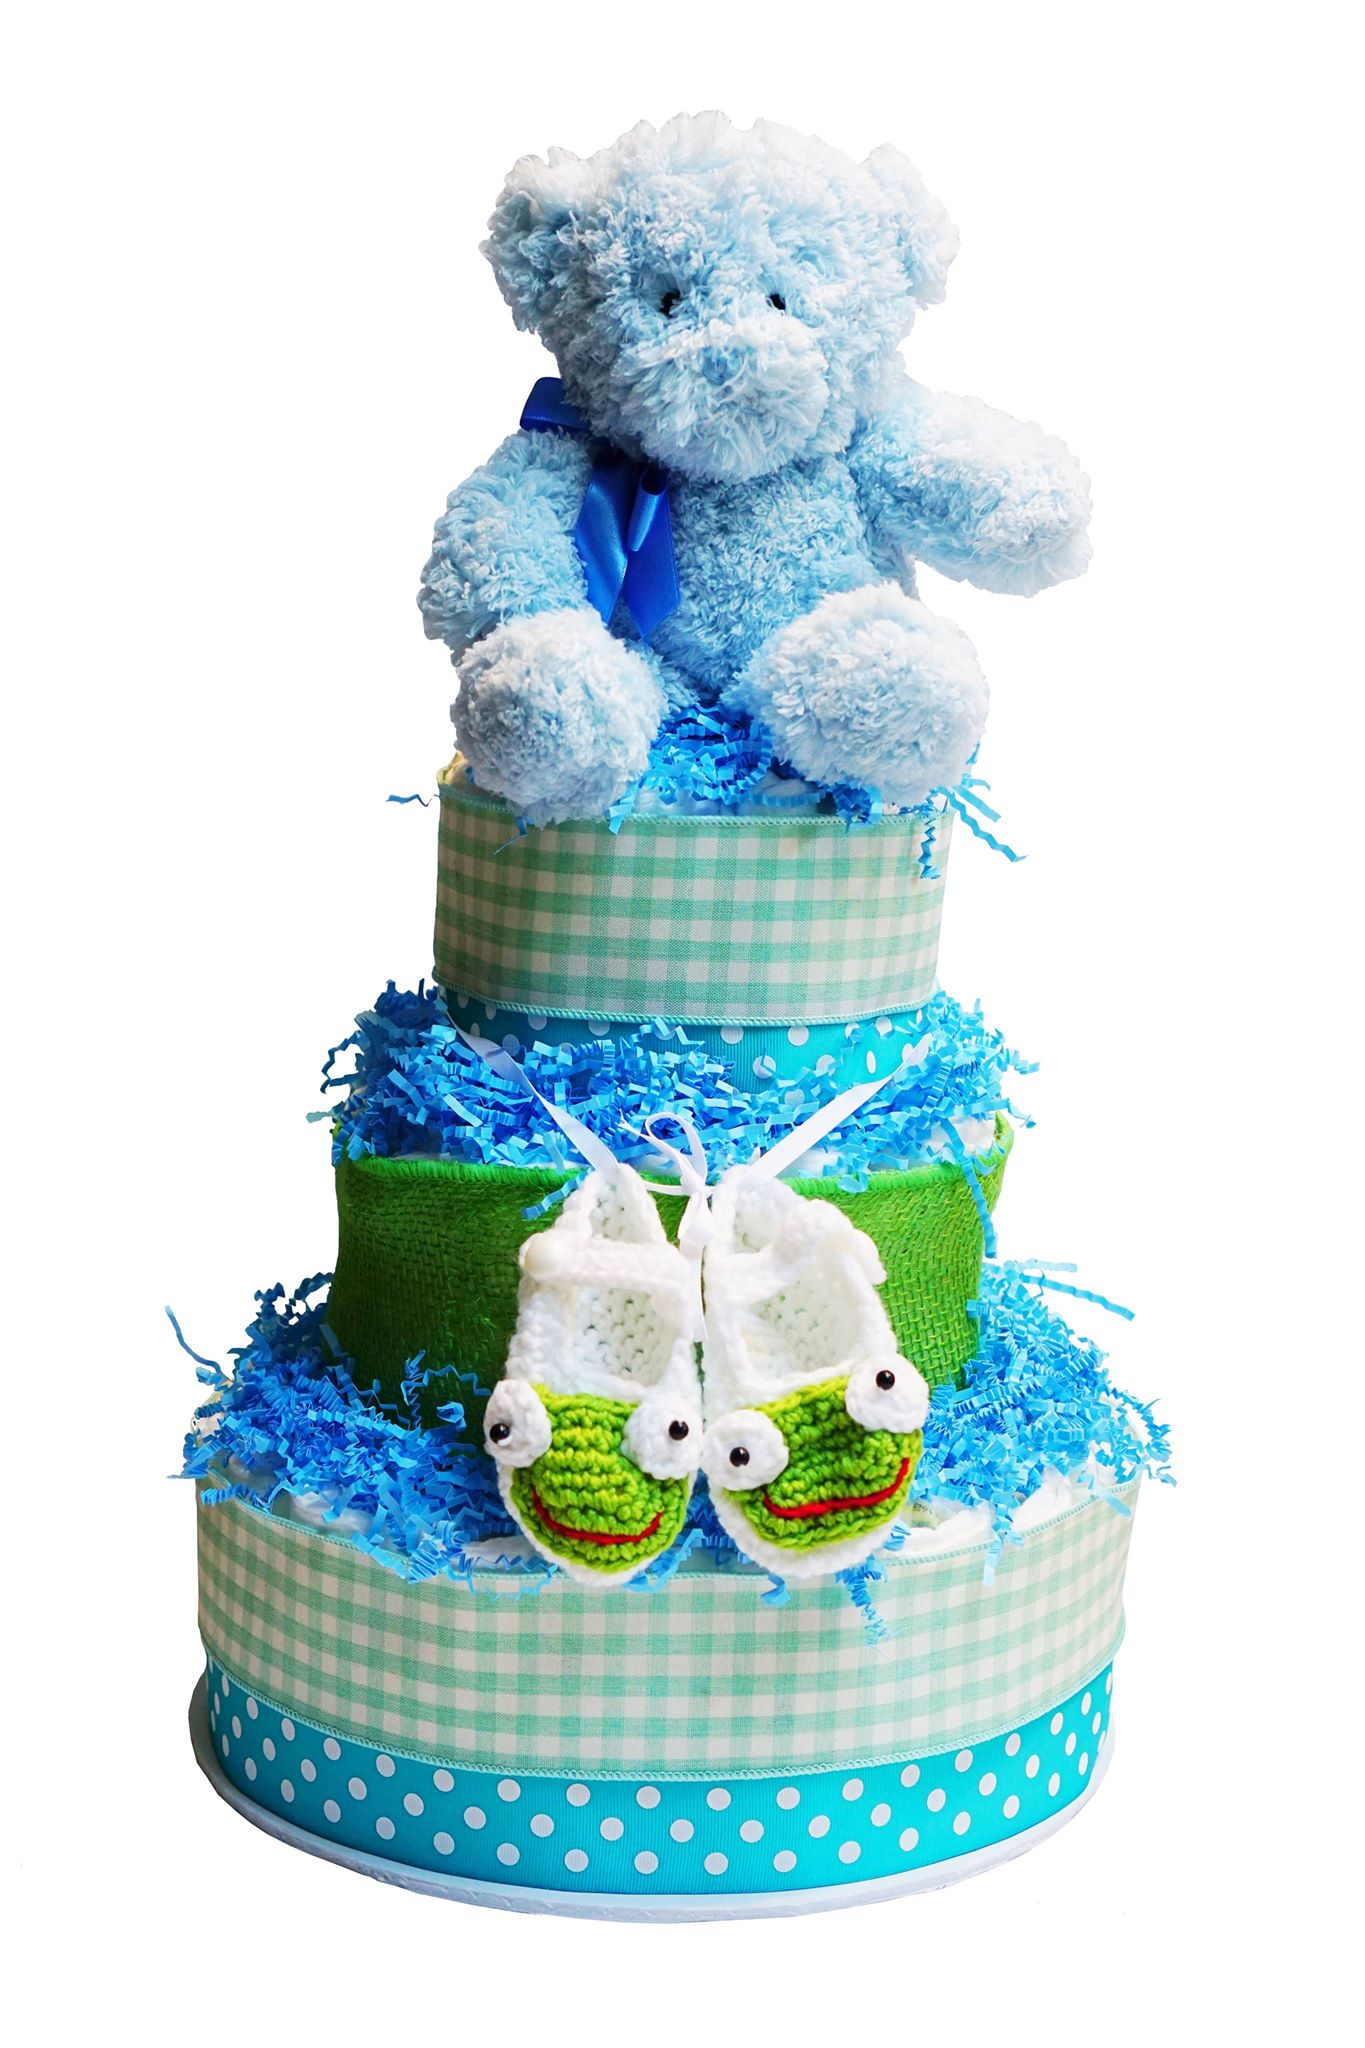 Baby shower diaper cakes new baby gift baskets crib beddings shoes baby cakes 3 tier diaper cake negle Images